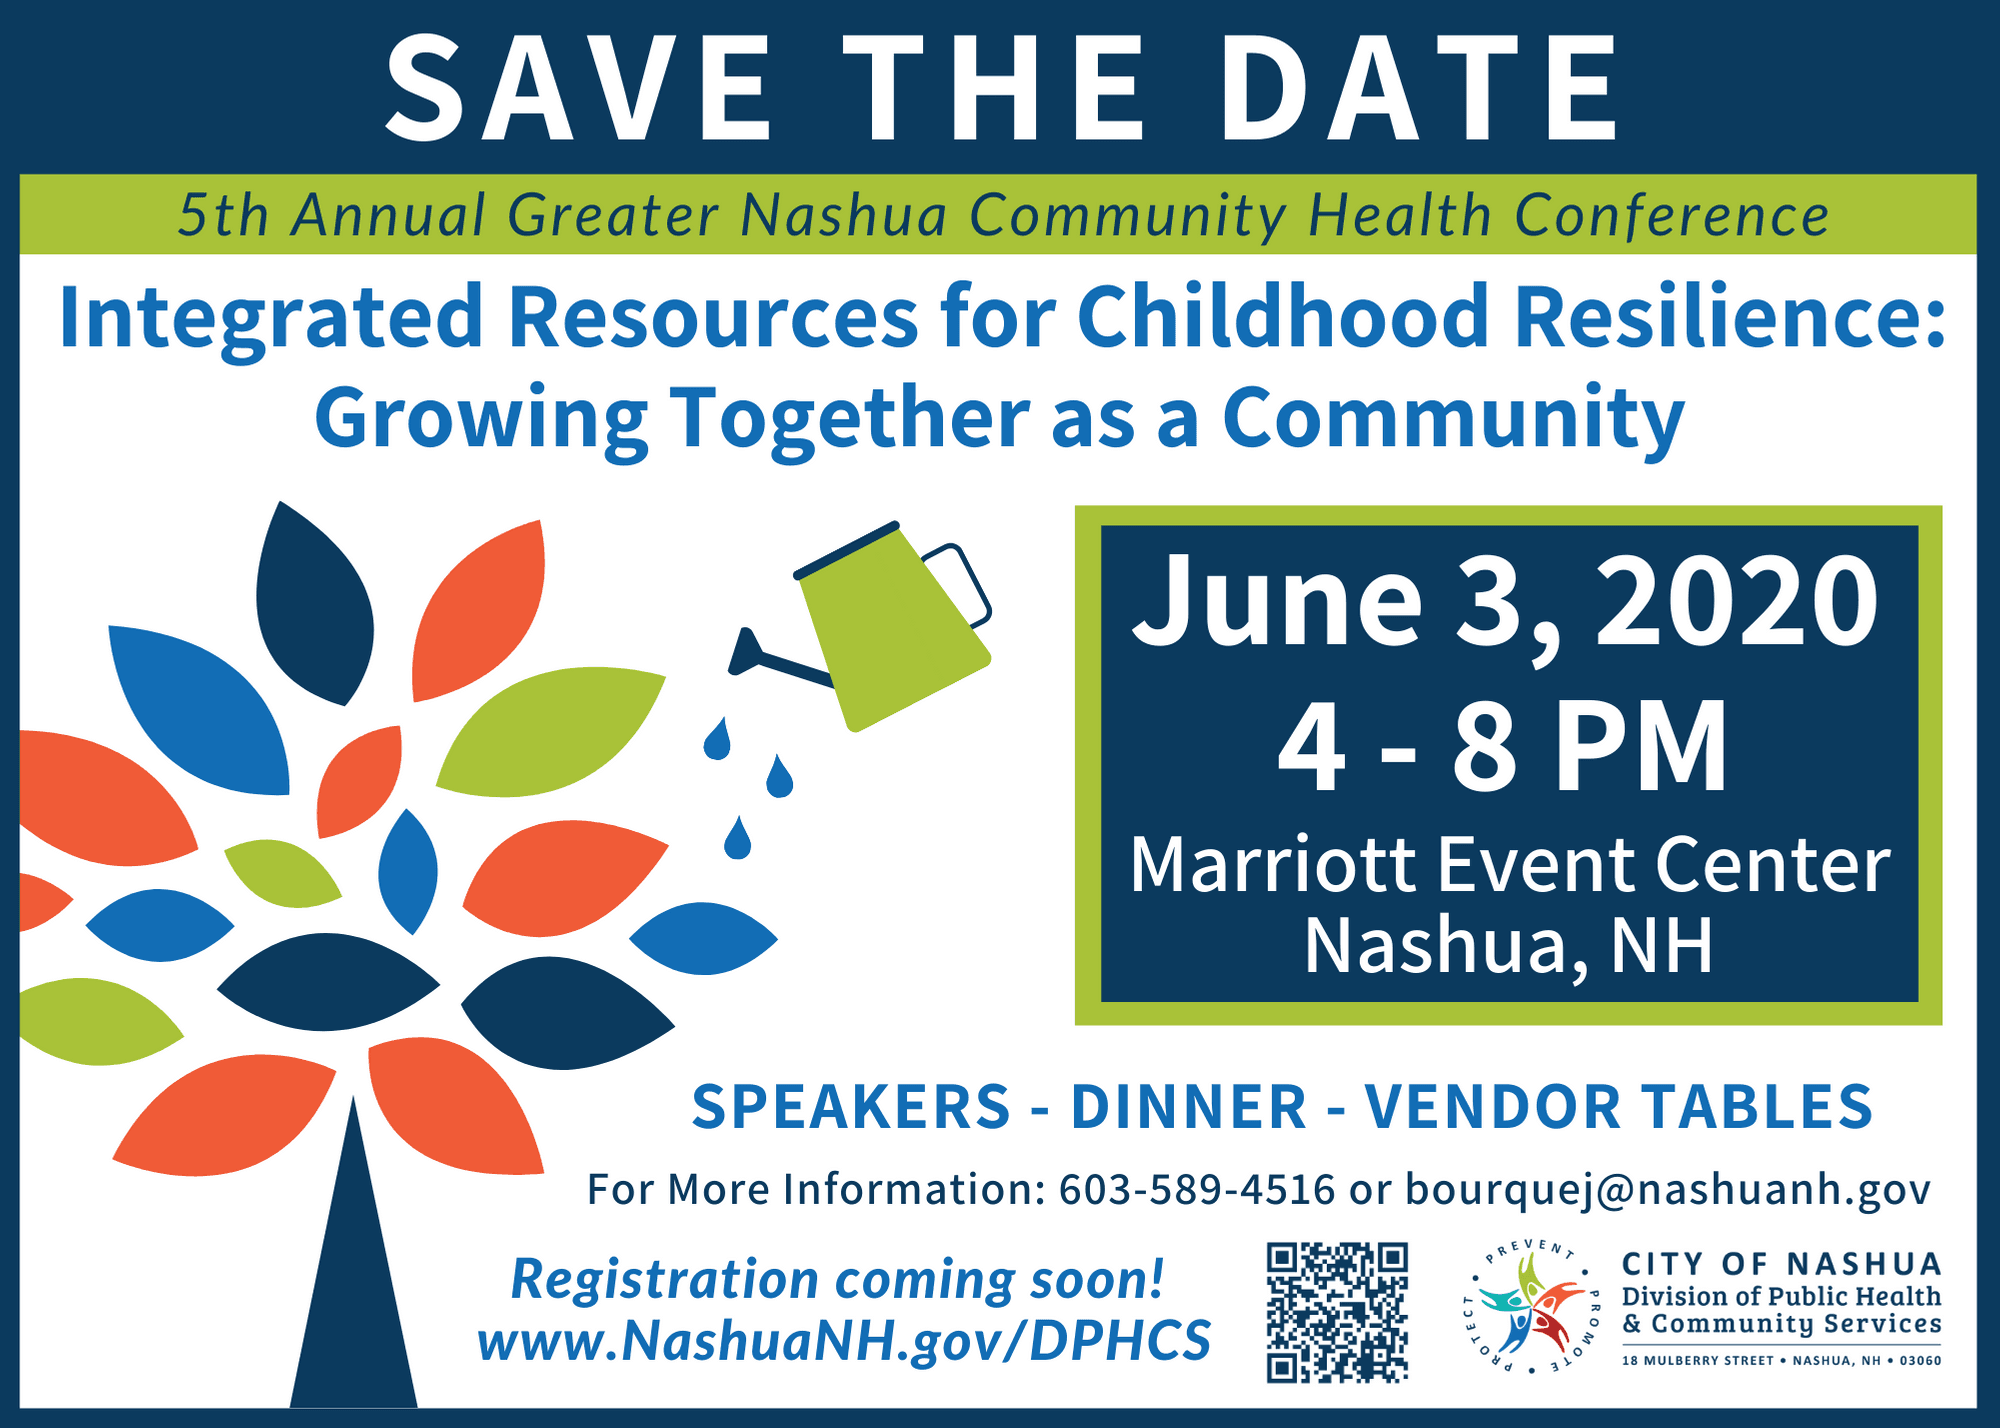 2020 CHD Conf Save the Date